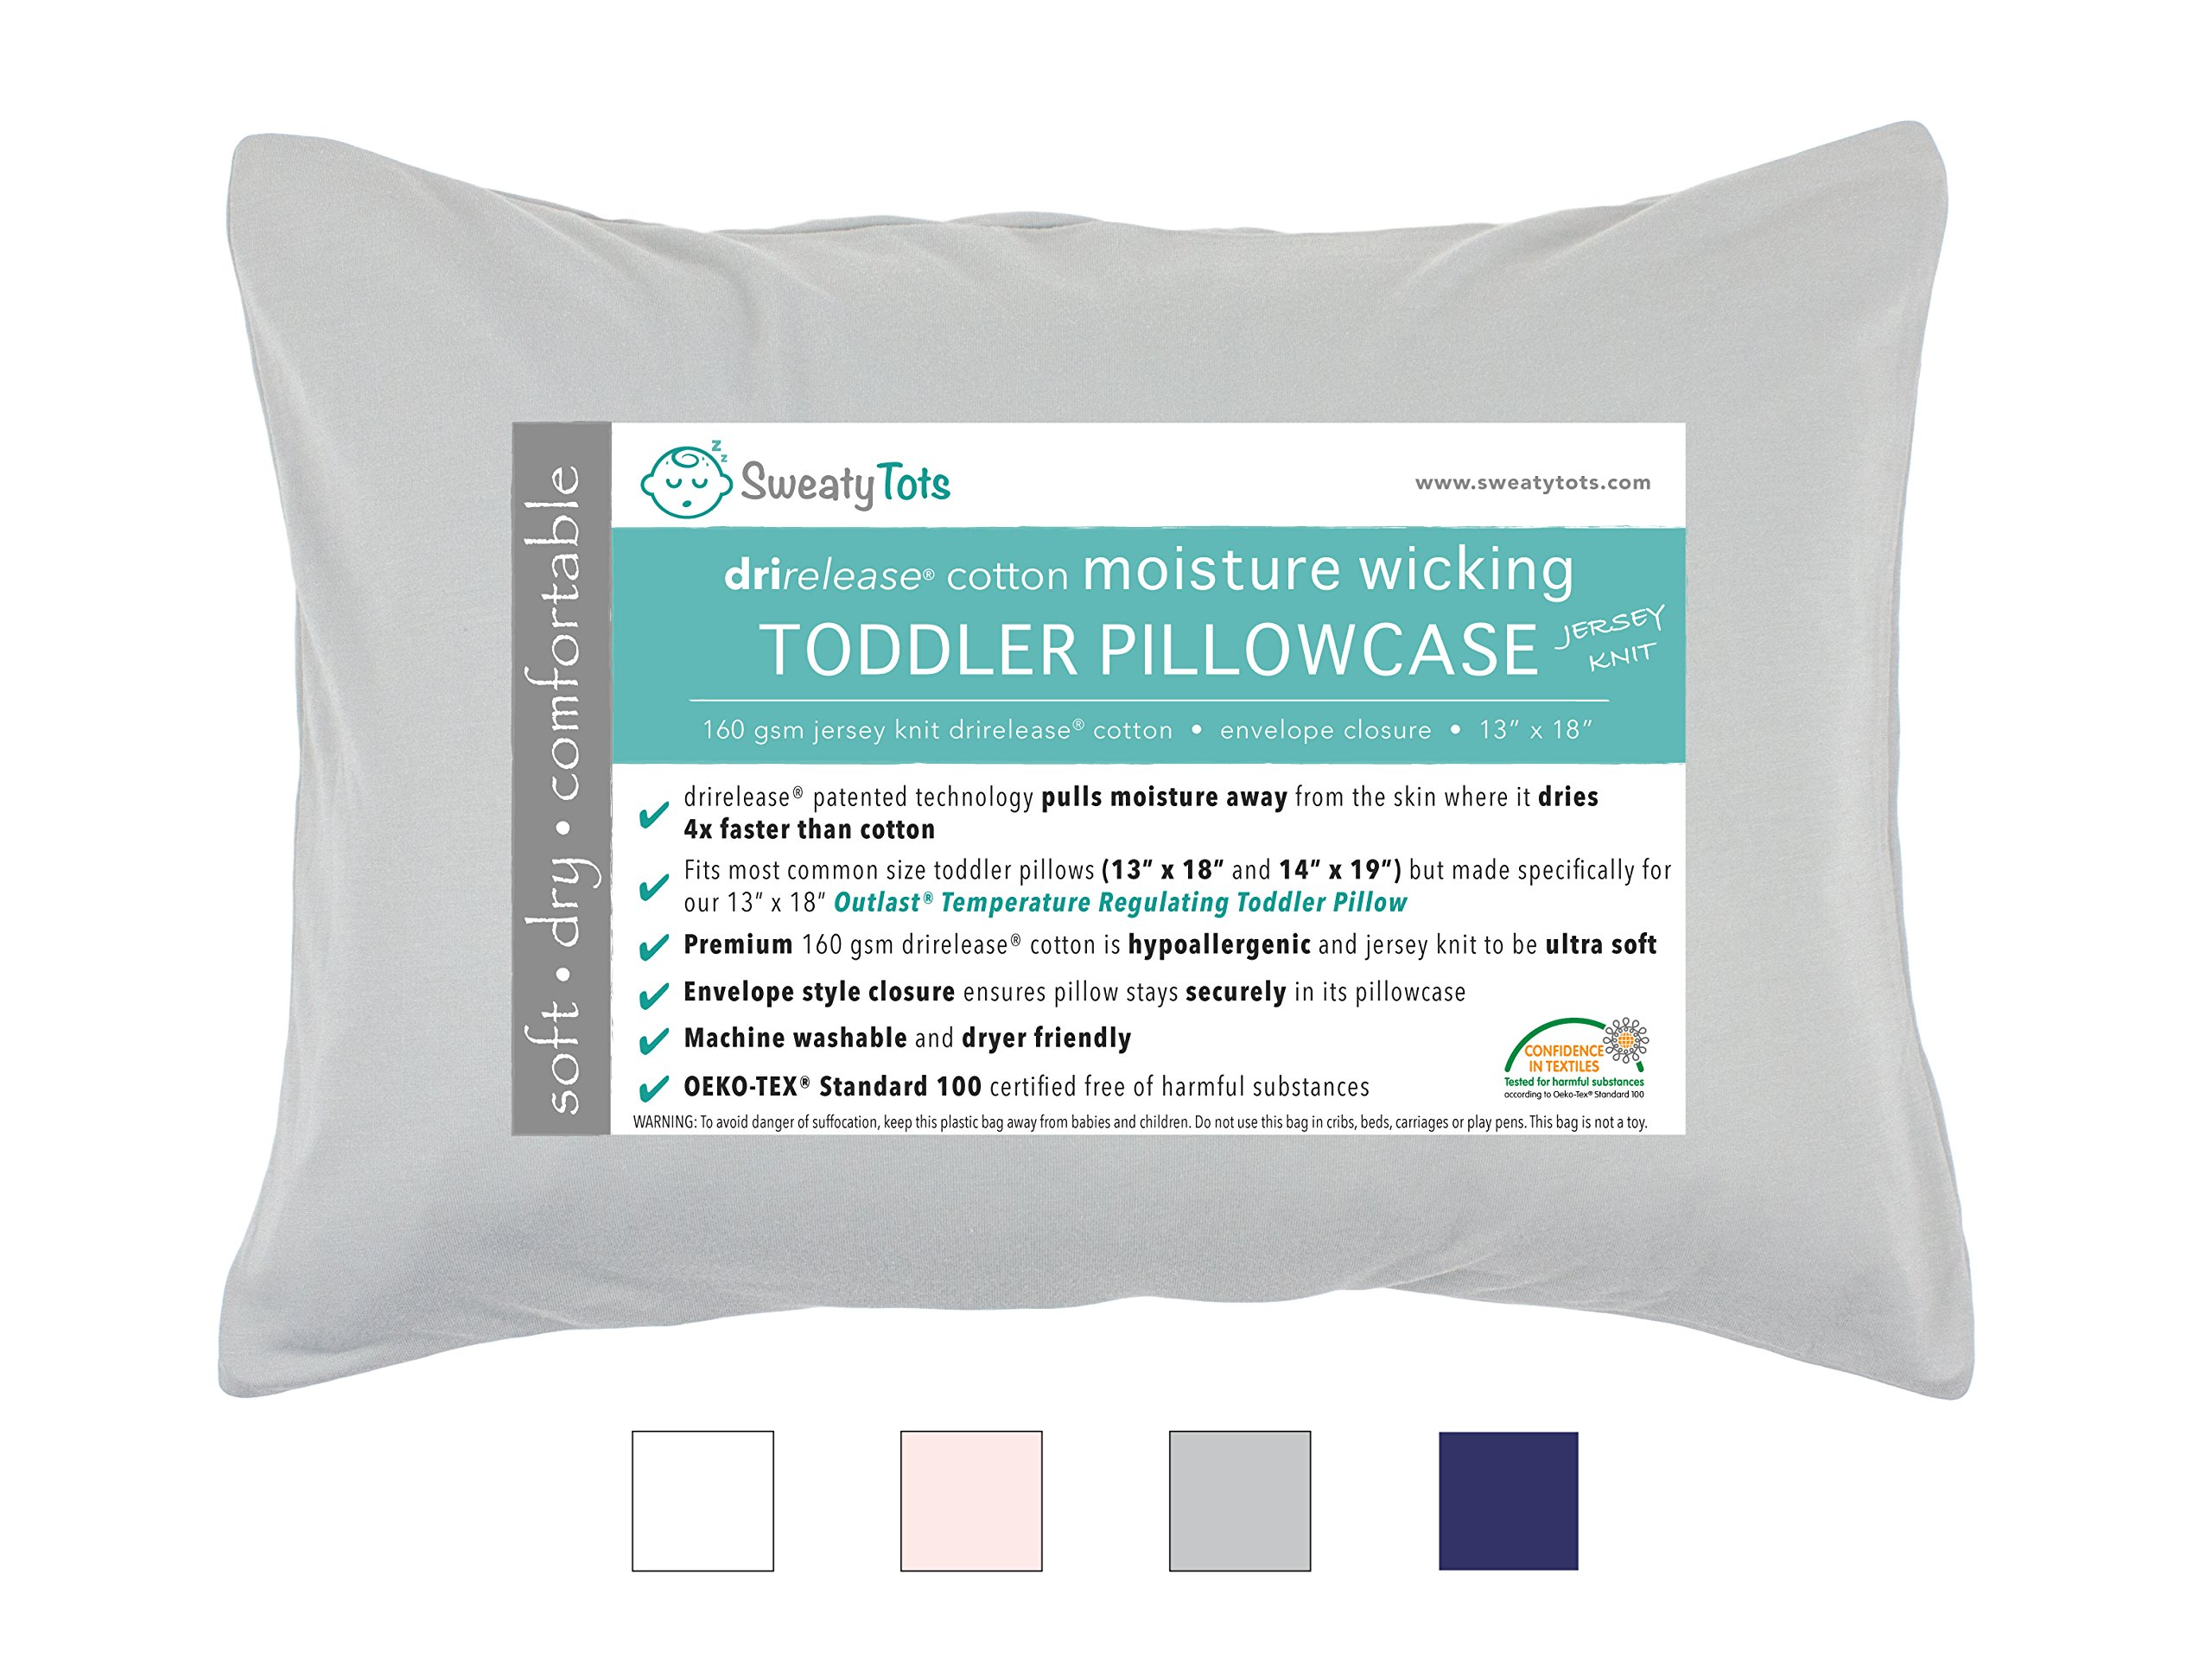 pillow promotes three soundly copy advanced cervical and soft cooling of fabric sleep contour foam gel memory products cold this with cover comfort